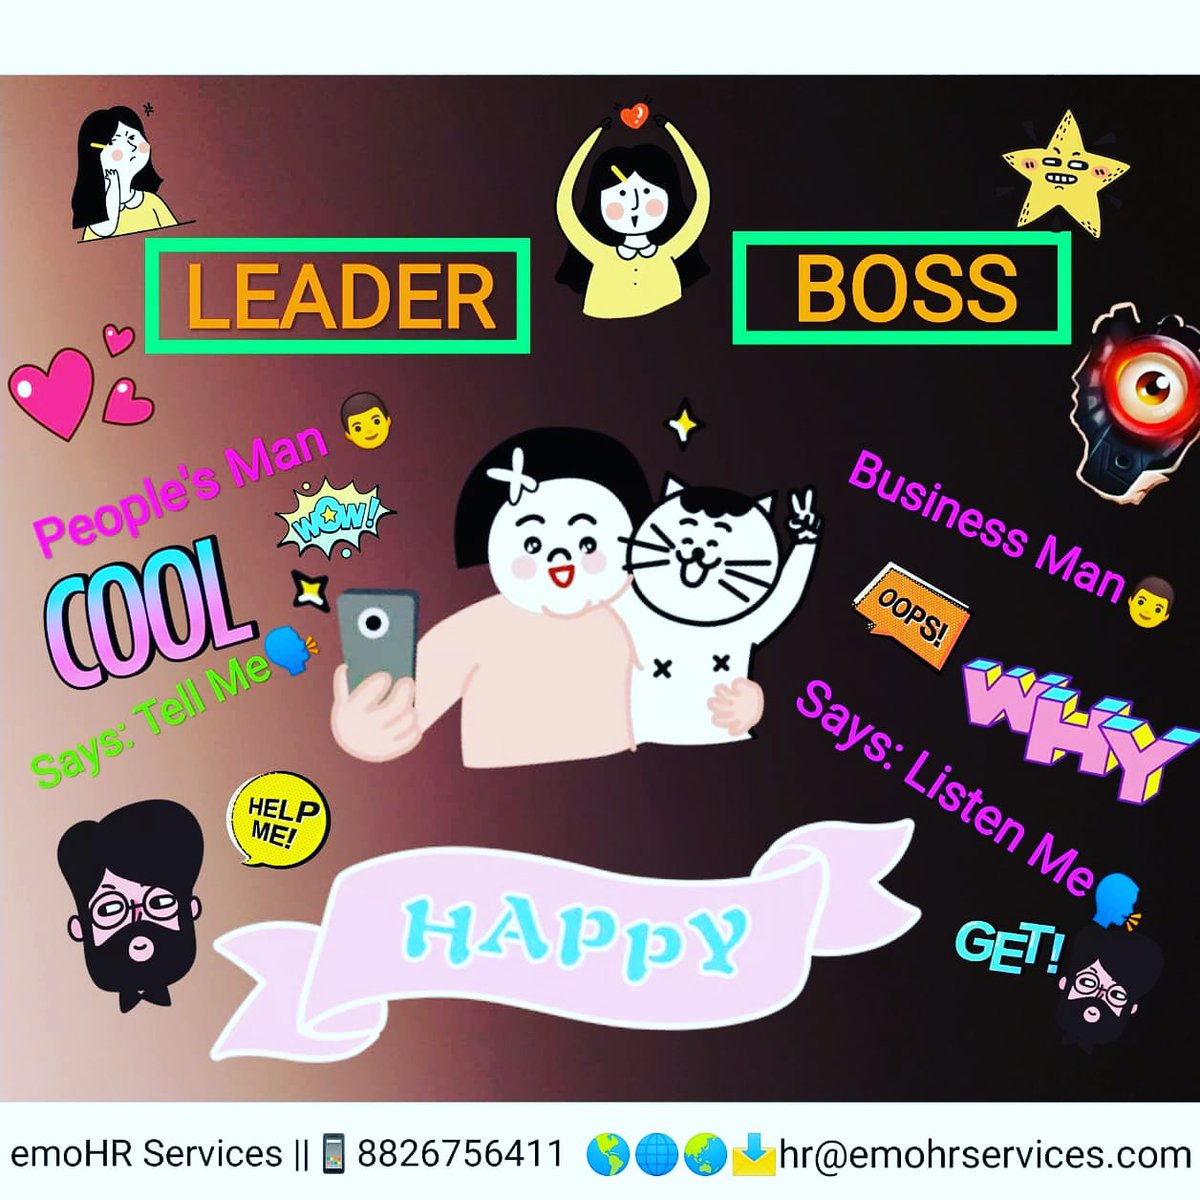 A Leader or A Boss Choose Wisely...! #career #job #jobs #education #motivation #careergoals #hiring #recruitment #work #employment #goals #inspiration #careers #love #employee #college #careerchange #hr #leadership #nowhiring #careeradvice #life #careerdevelopment #training https://t.co/yAWjx5w3PO